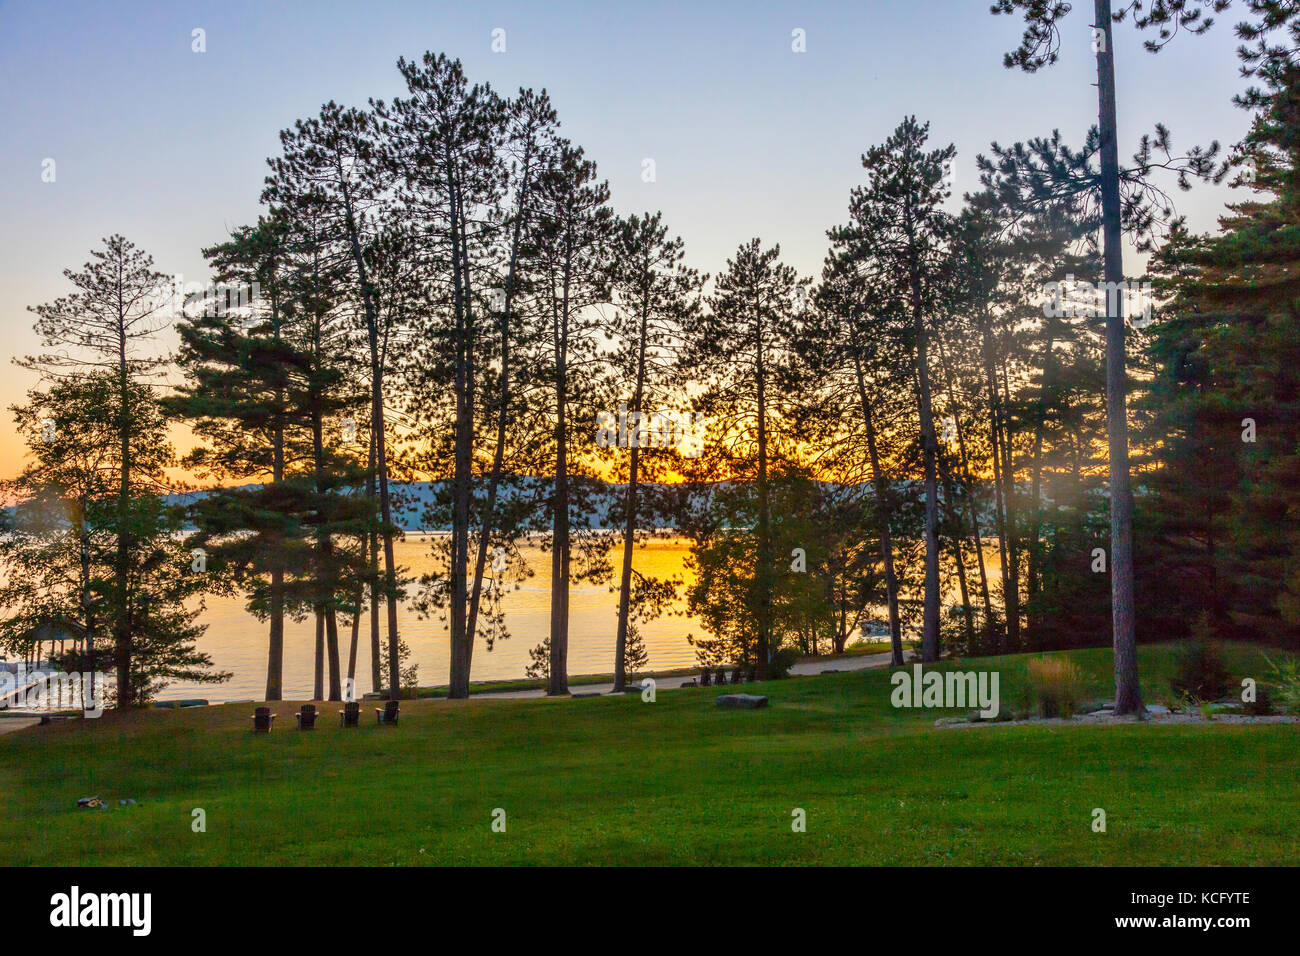 Sunset at Canada,Ontario,Huntsville,Dwight, Dwight Beach sommer playground in Ontario's North in Cottage Country - Stock Image